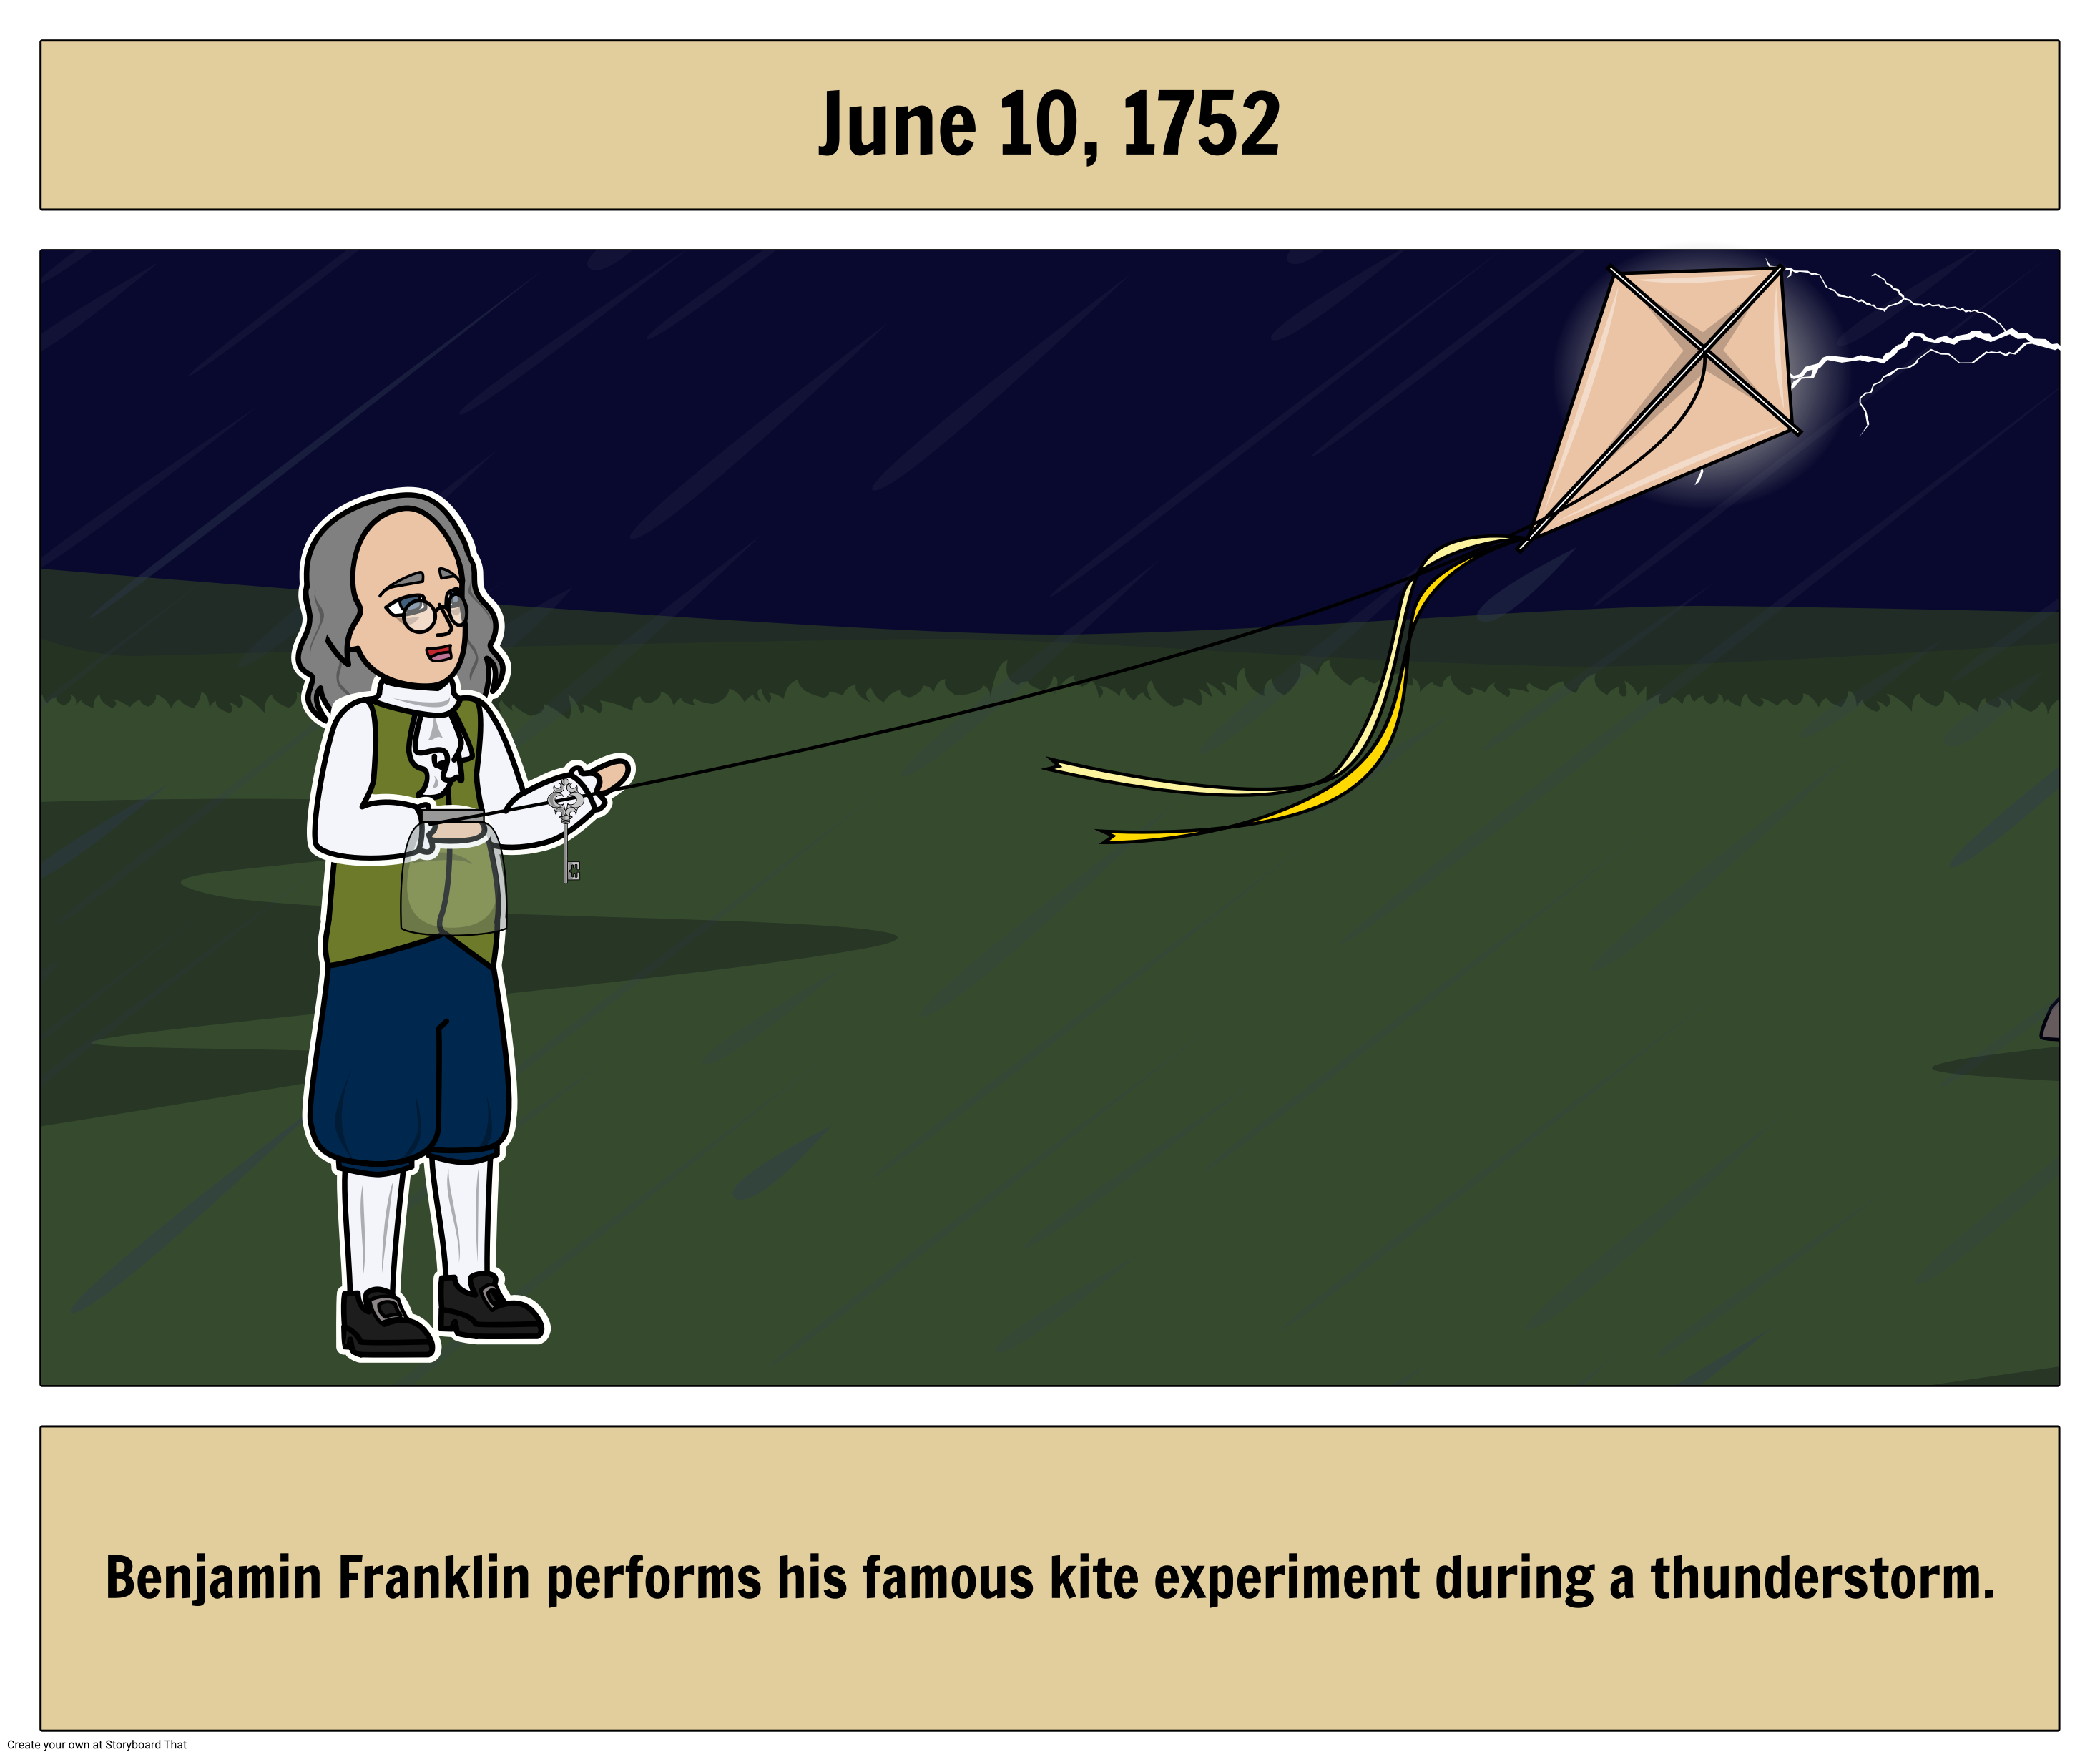 Benjamin Franklin Flies Kite